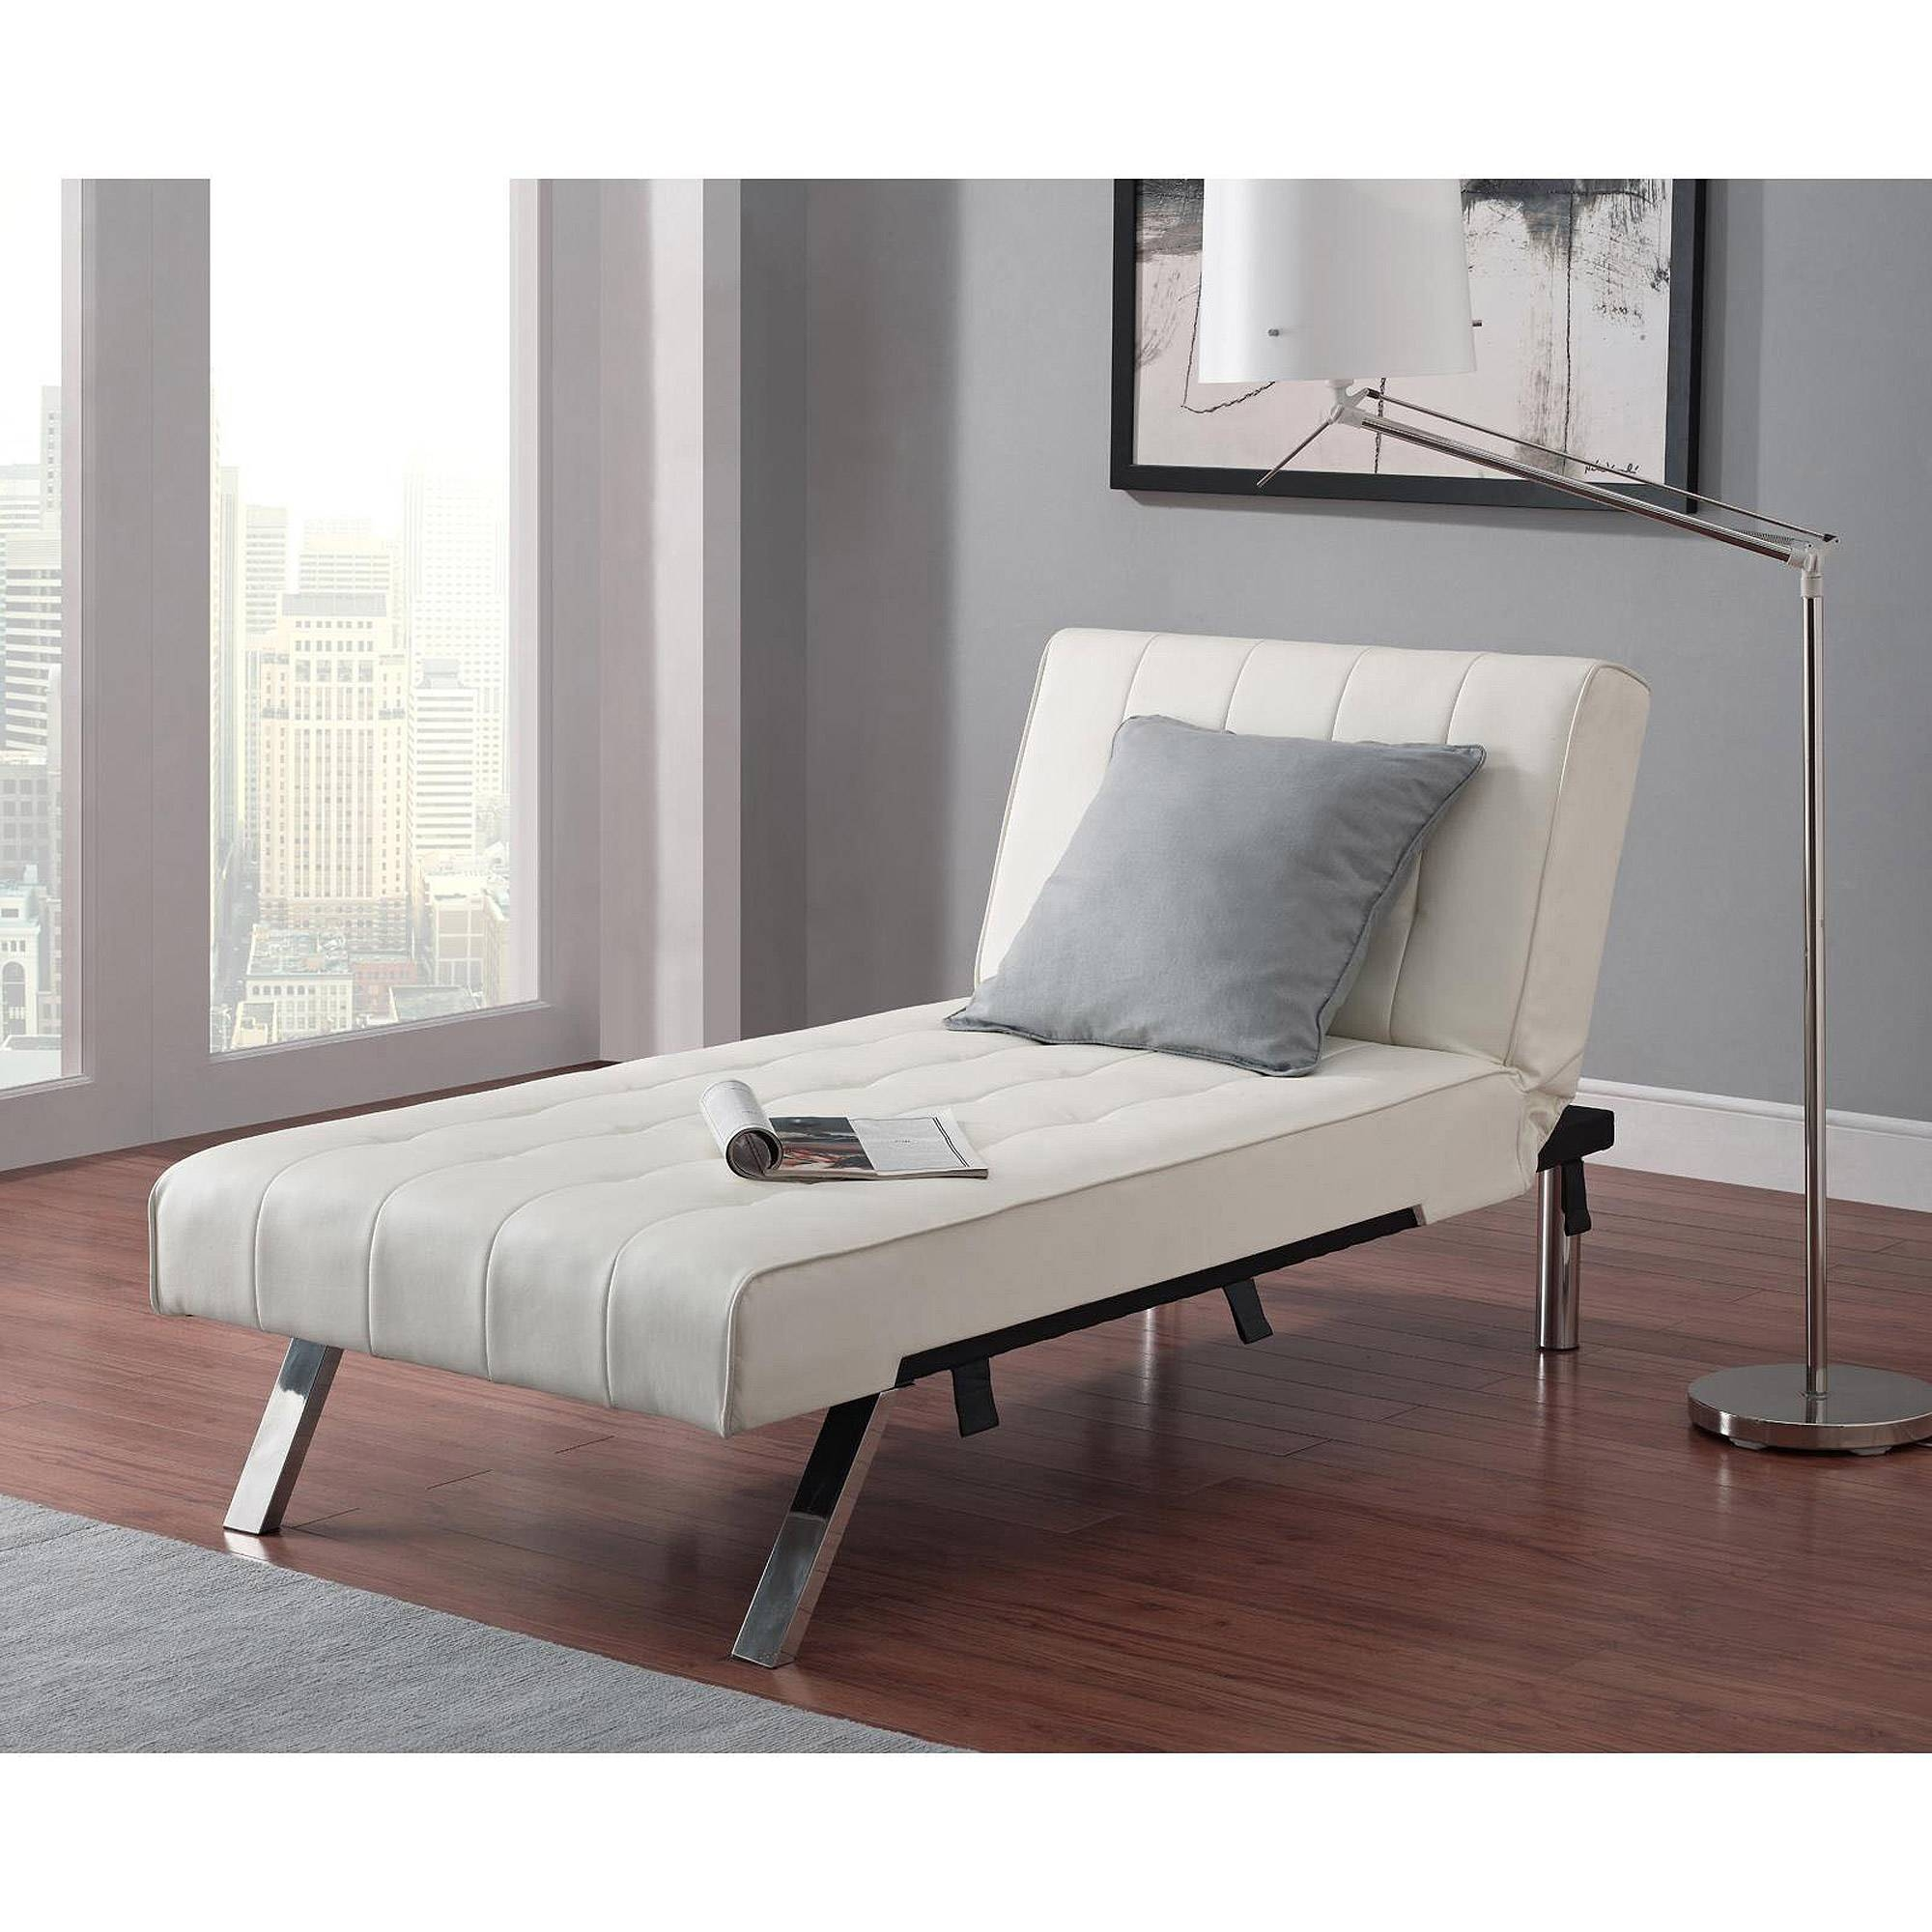 Emily Futon Chaise Lounger, Multiple Colors - Walmart inside Sectional Sofas With Sleeper and Chaise (Image 11 of 30)